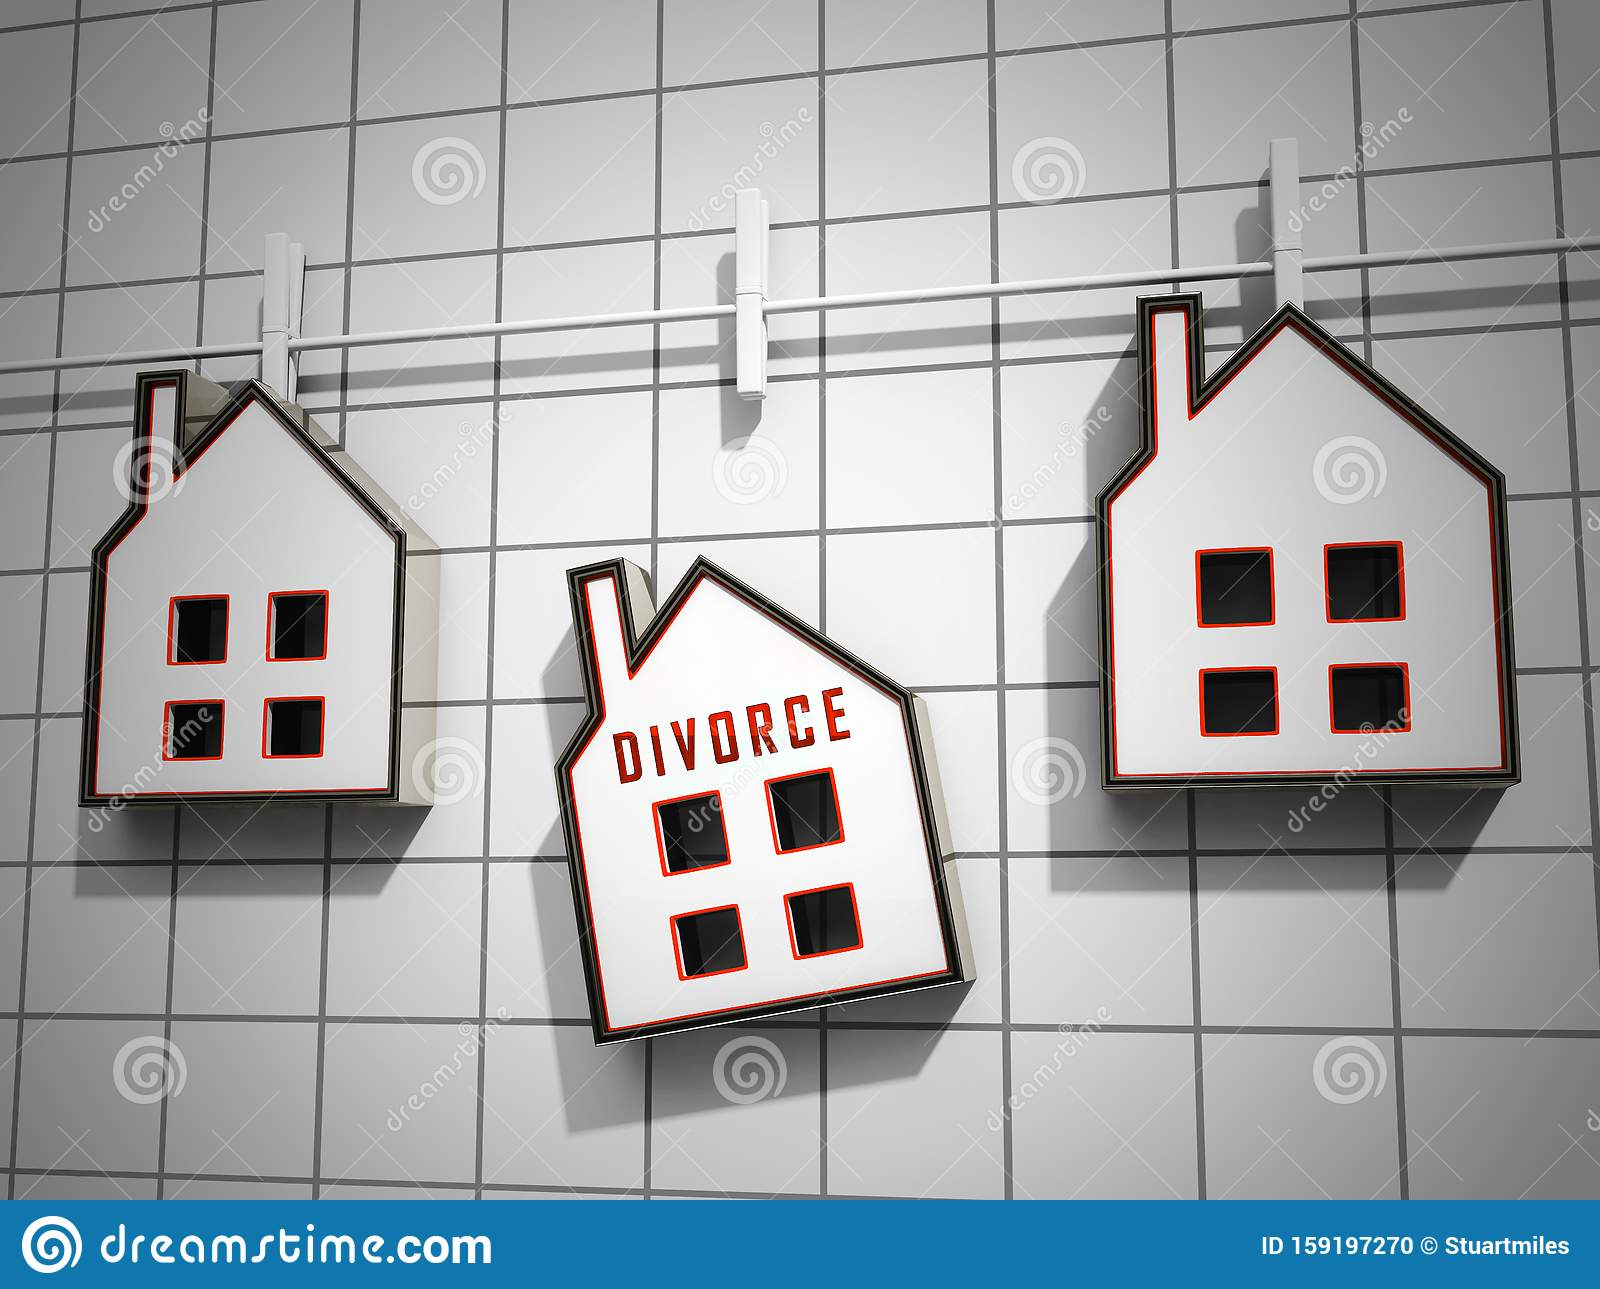 Divorce House Split Icons Depicts Legal Sharing Of